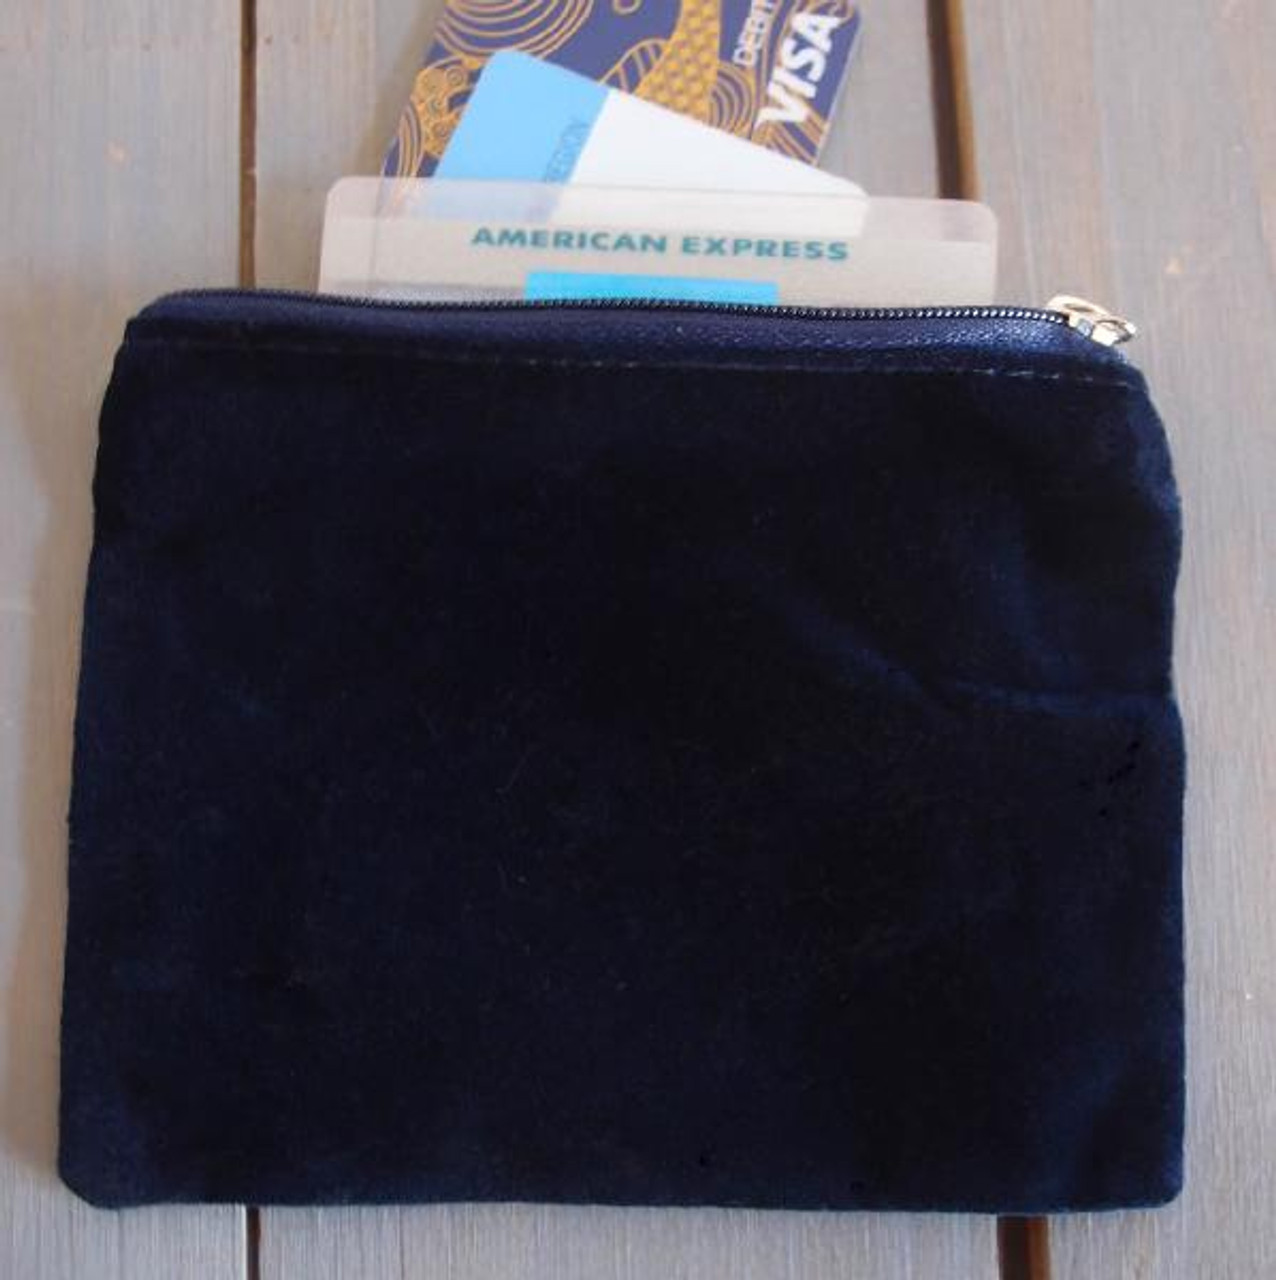 Blue Velvet with Blue Zippered Bag (3 sizes)